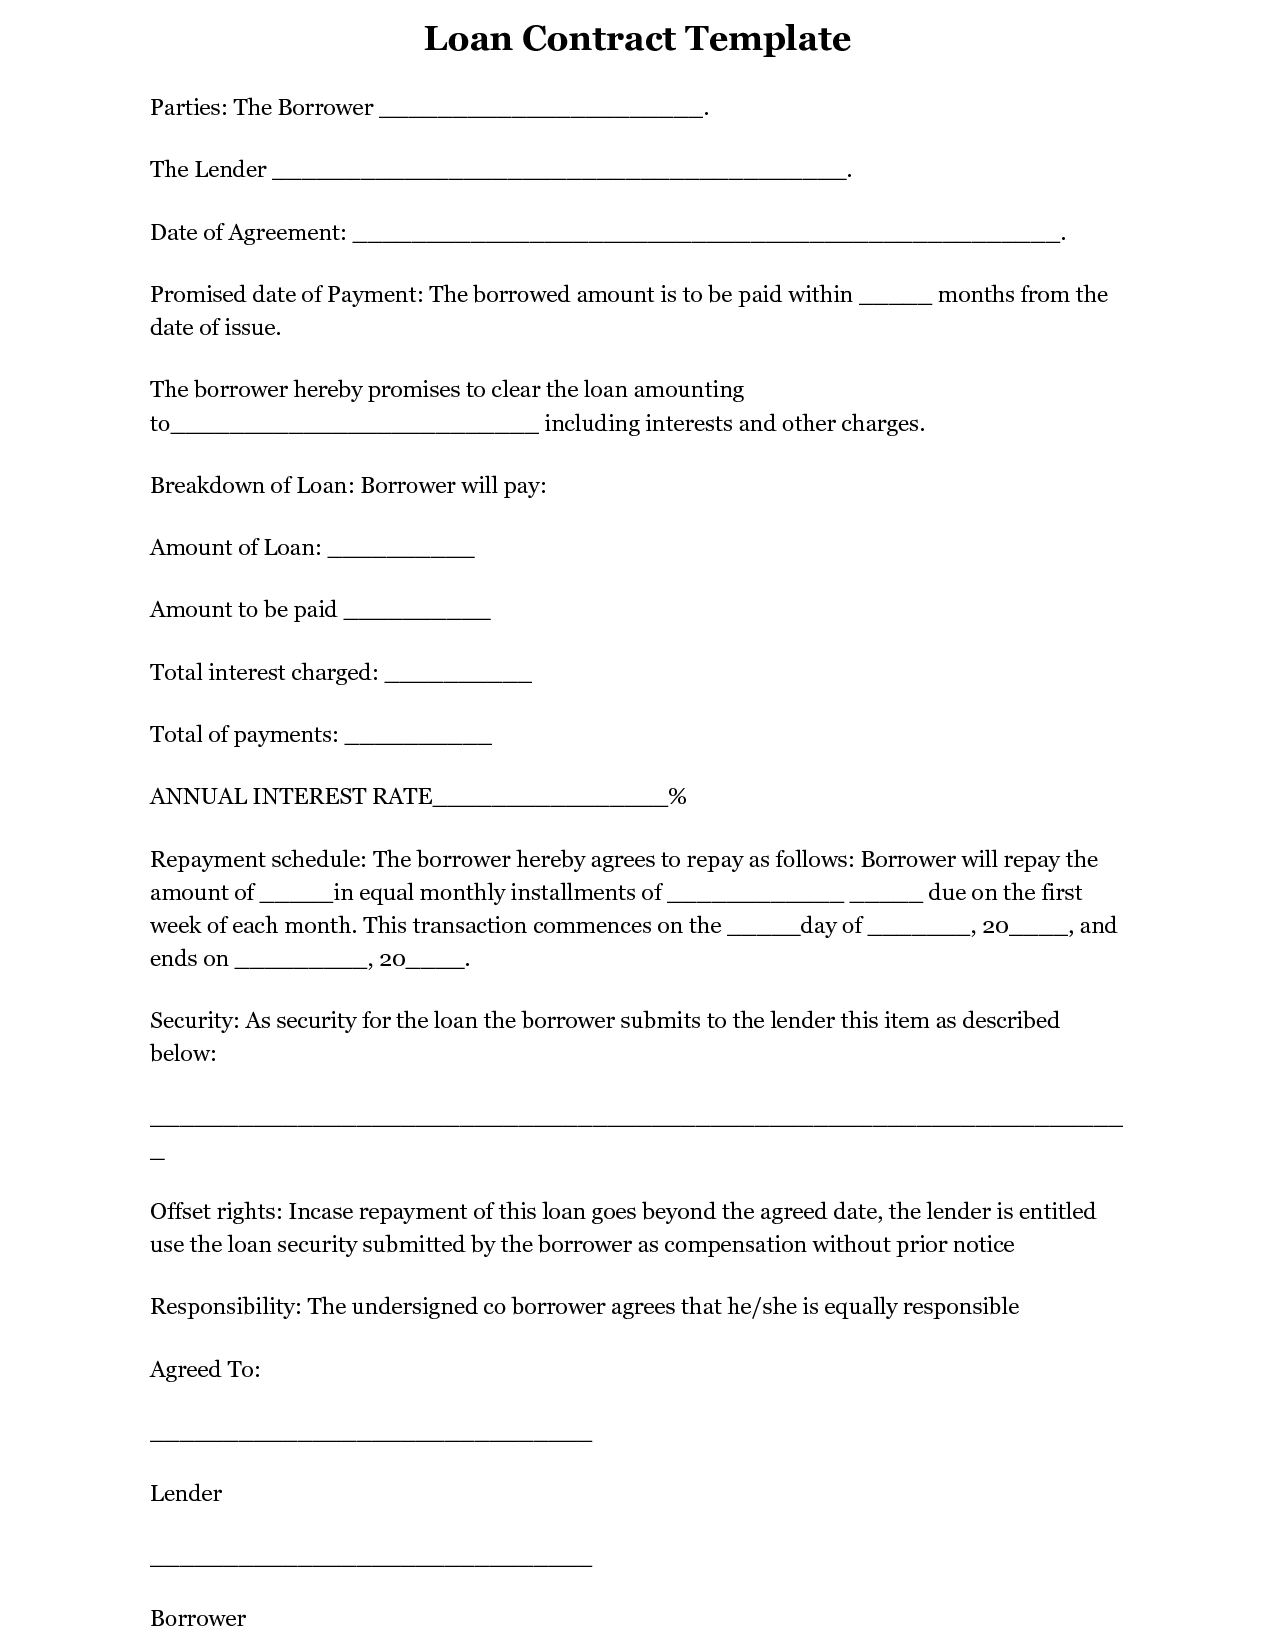 simple interest loan agreement template – Sample Loan Documents